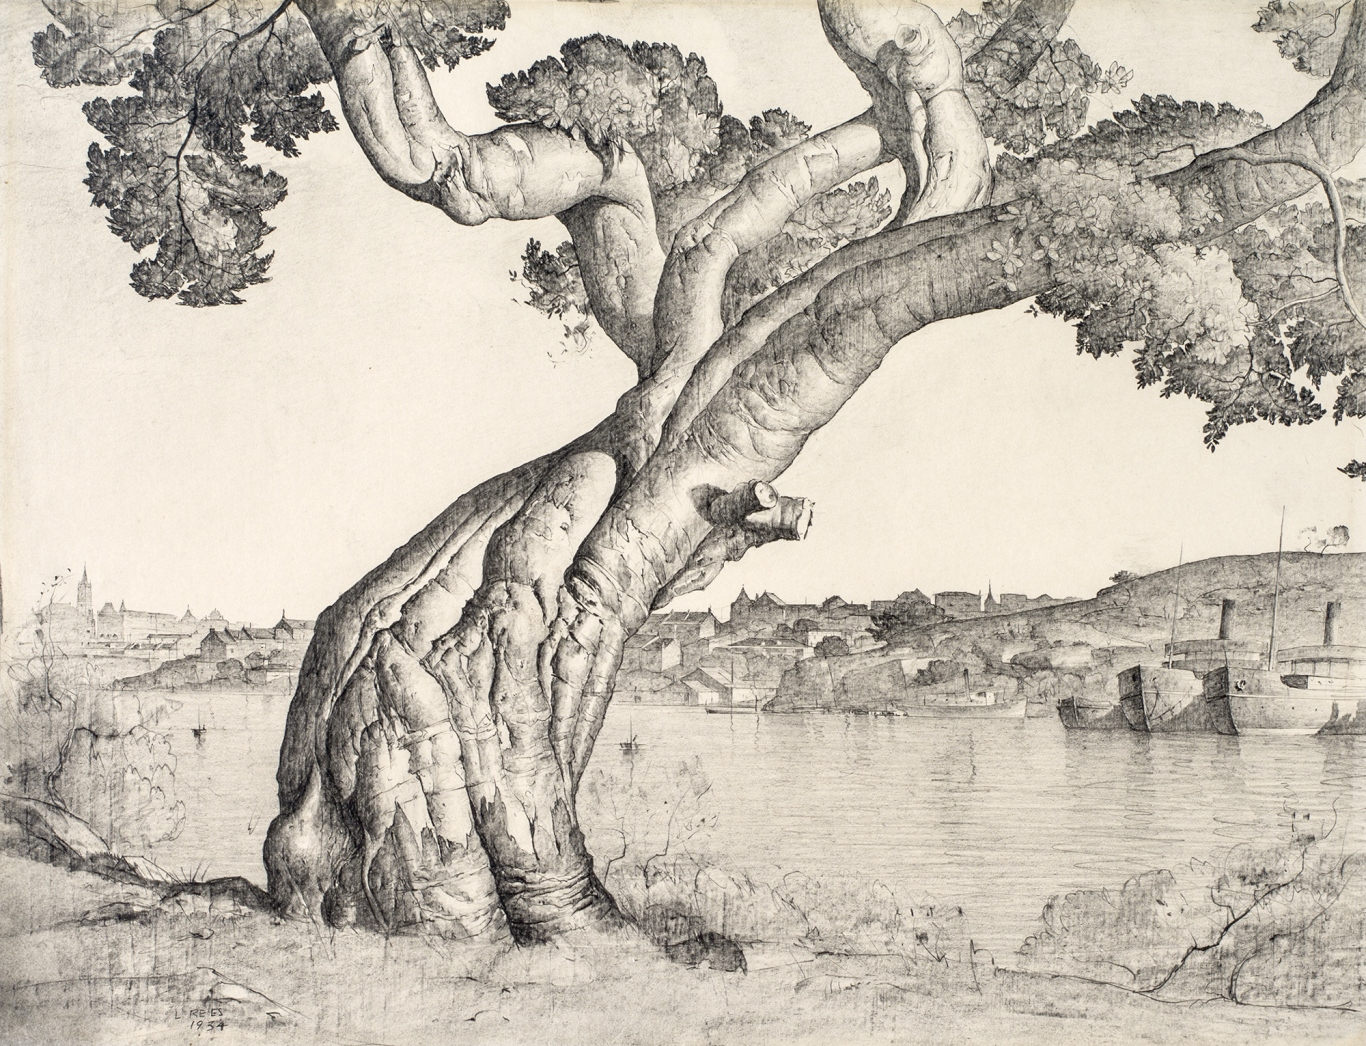 This is a pencil drawing of a fig tree